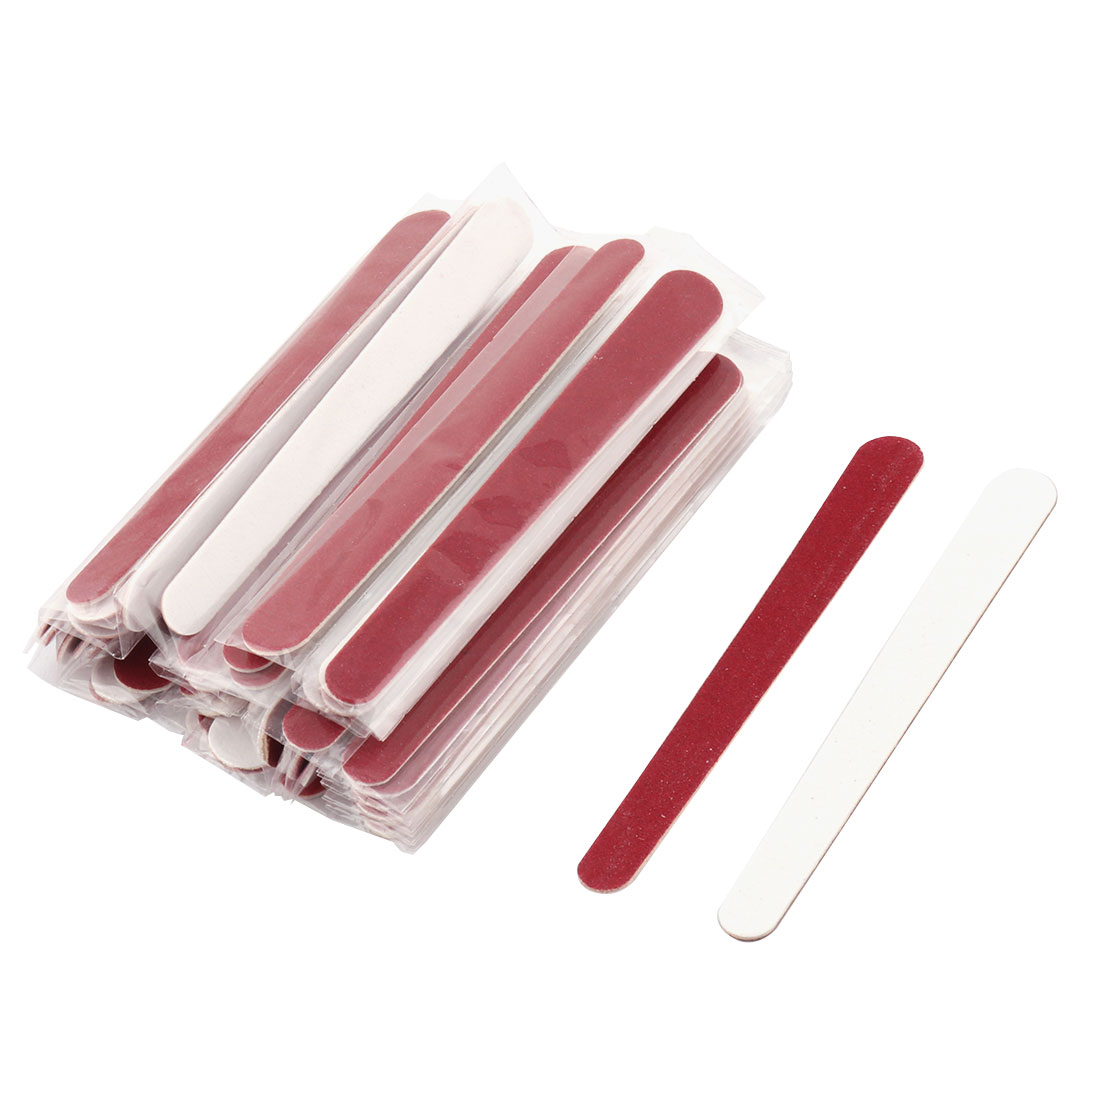 Portable Abrasive Board Disposable Professional Beauty Care Nail File 50 PCS